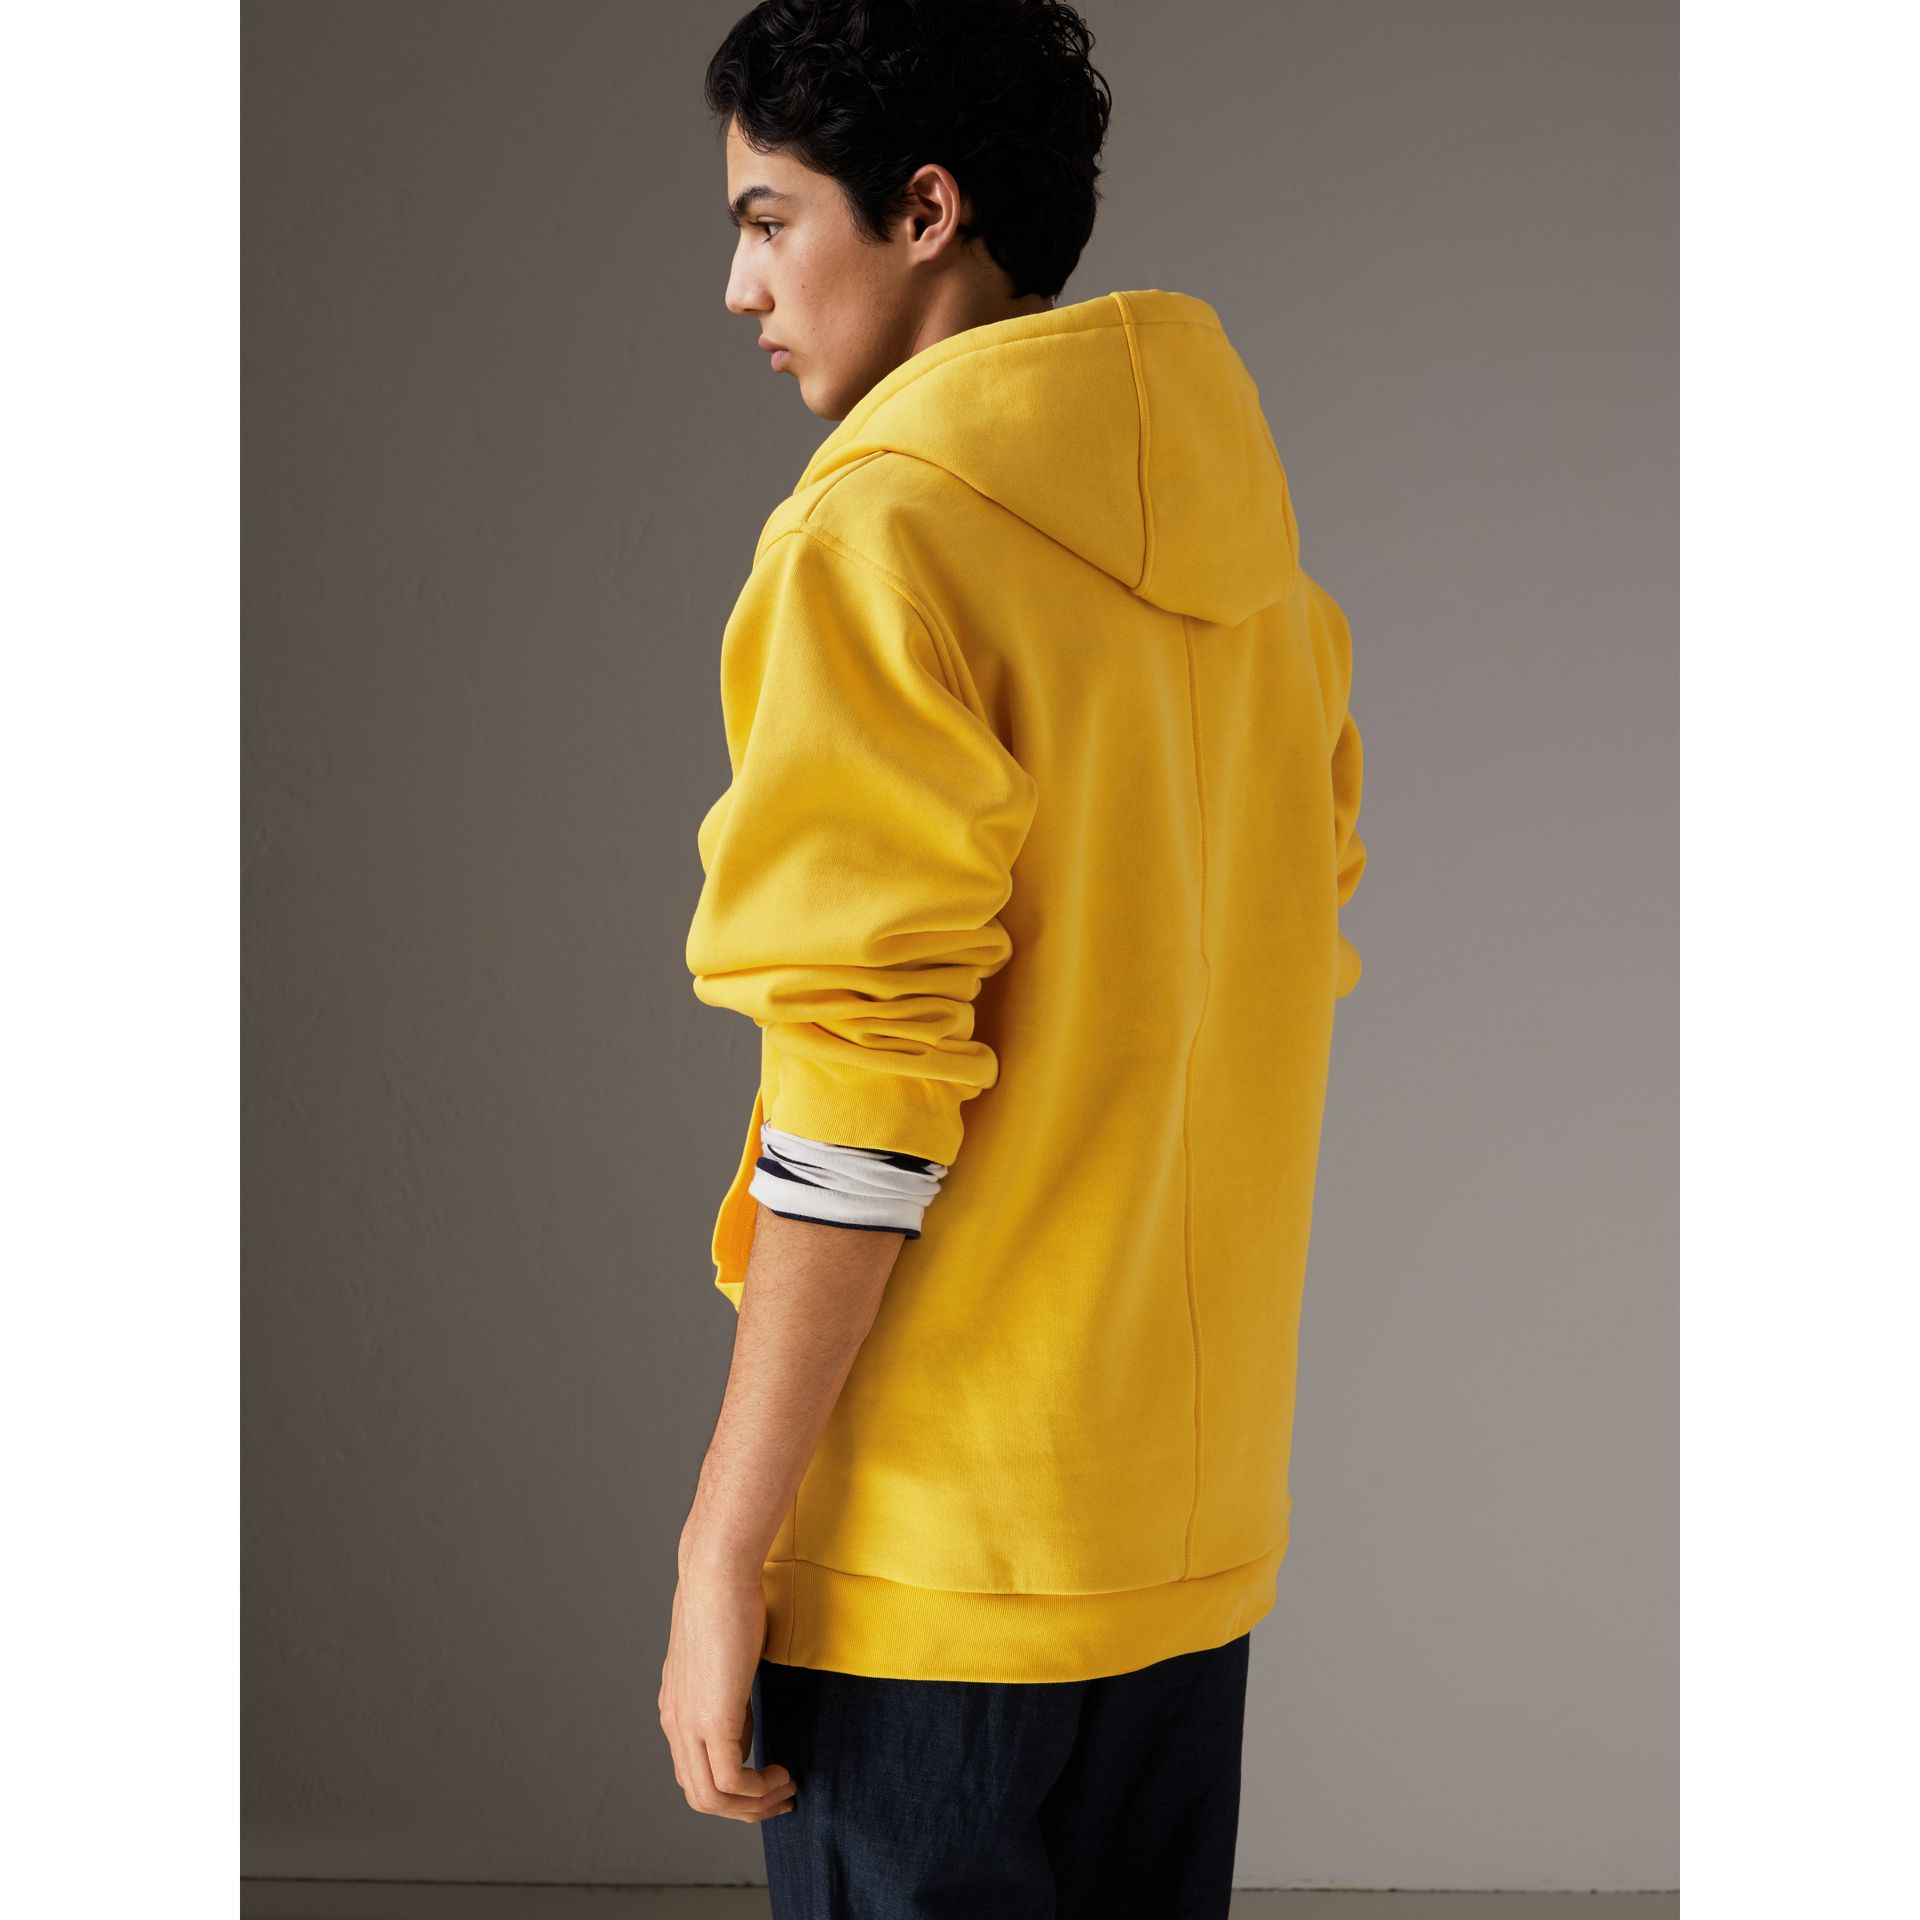 Oversized Sweatshirt Half-zip Hoodie in Bright Yellow - Men | Burberry United States - gallery image 2